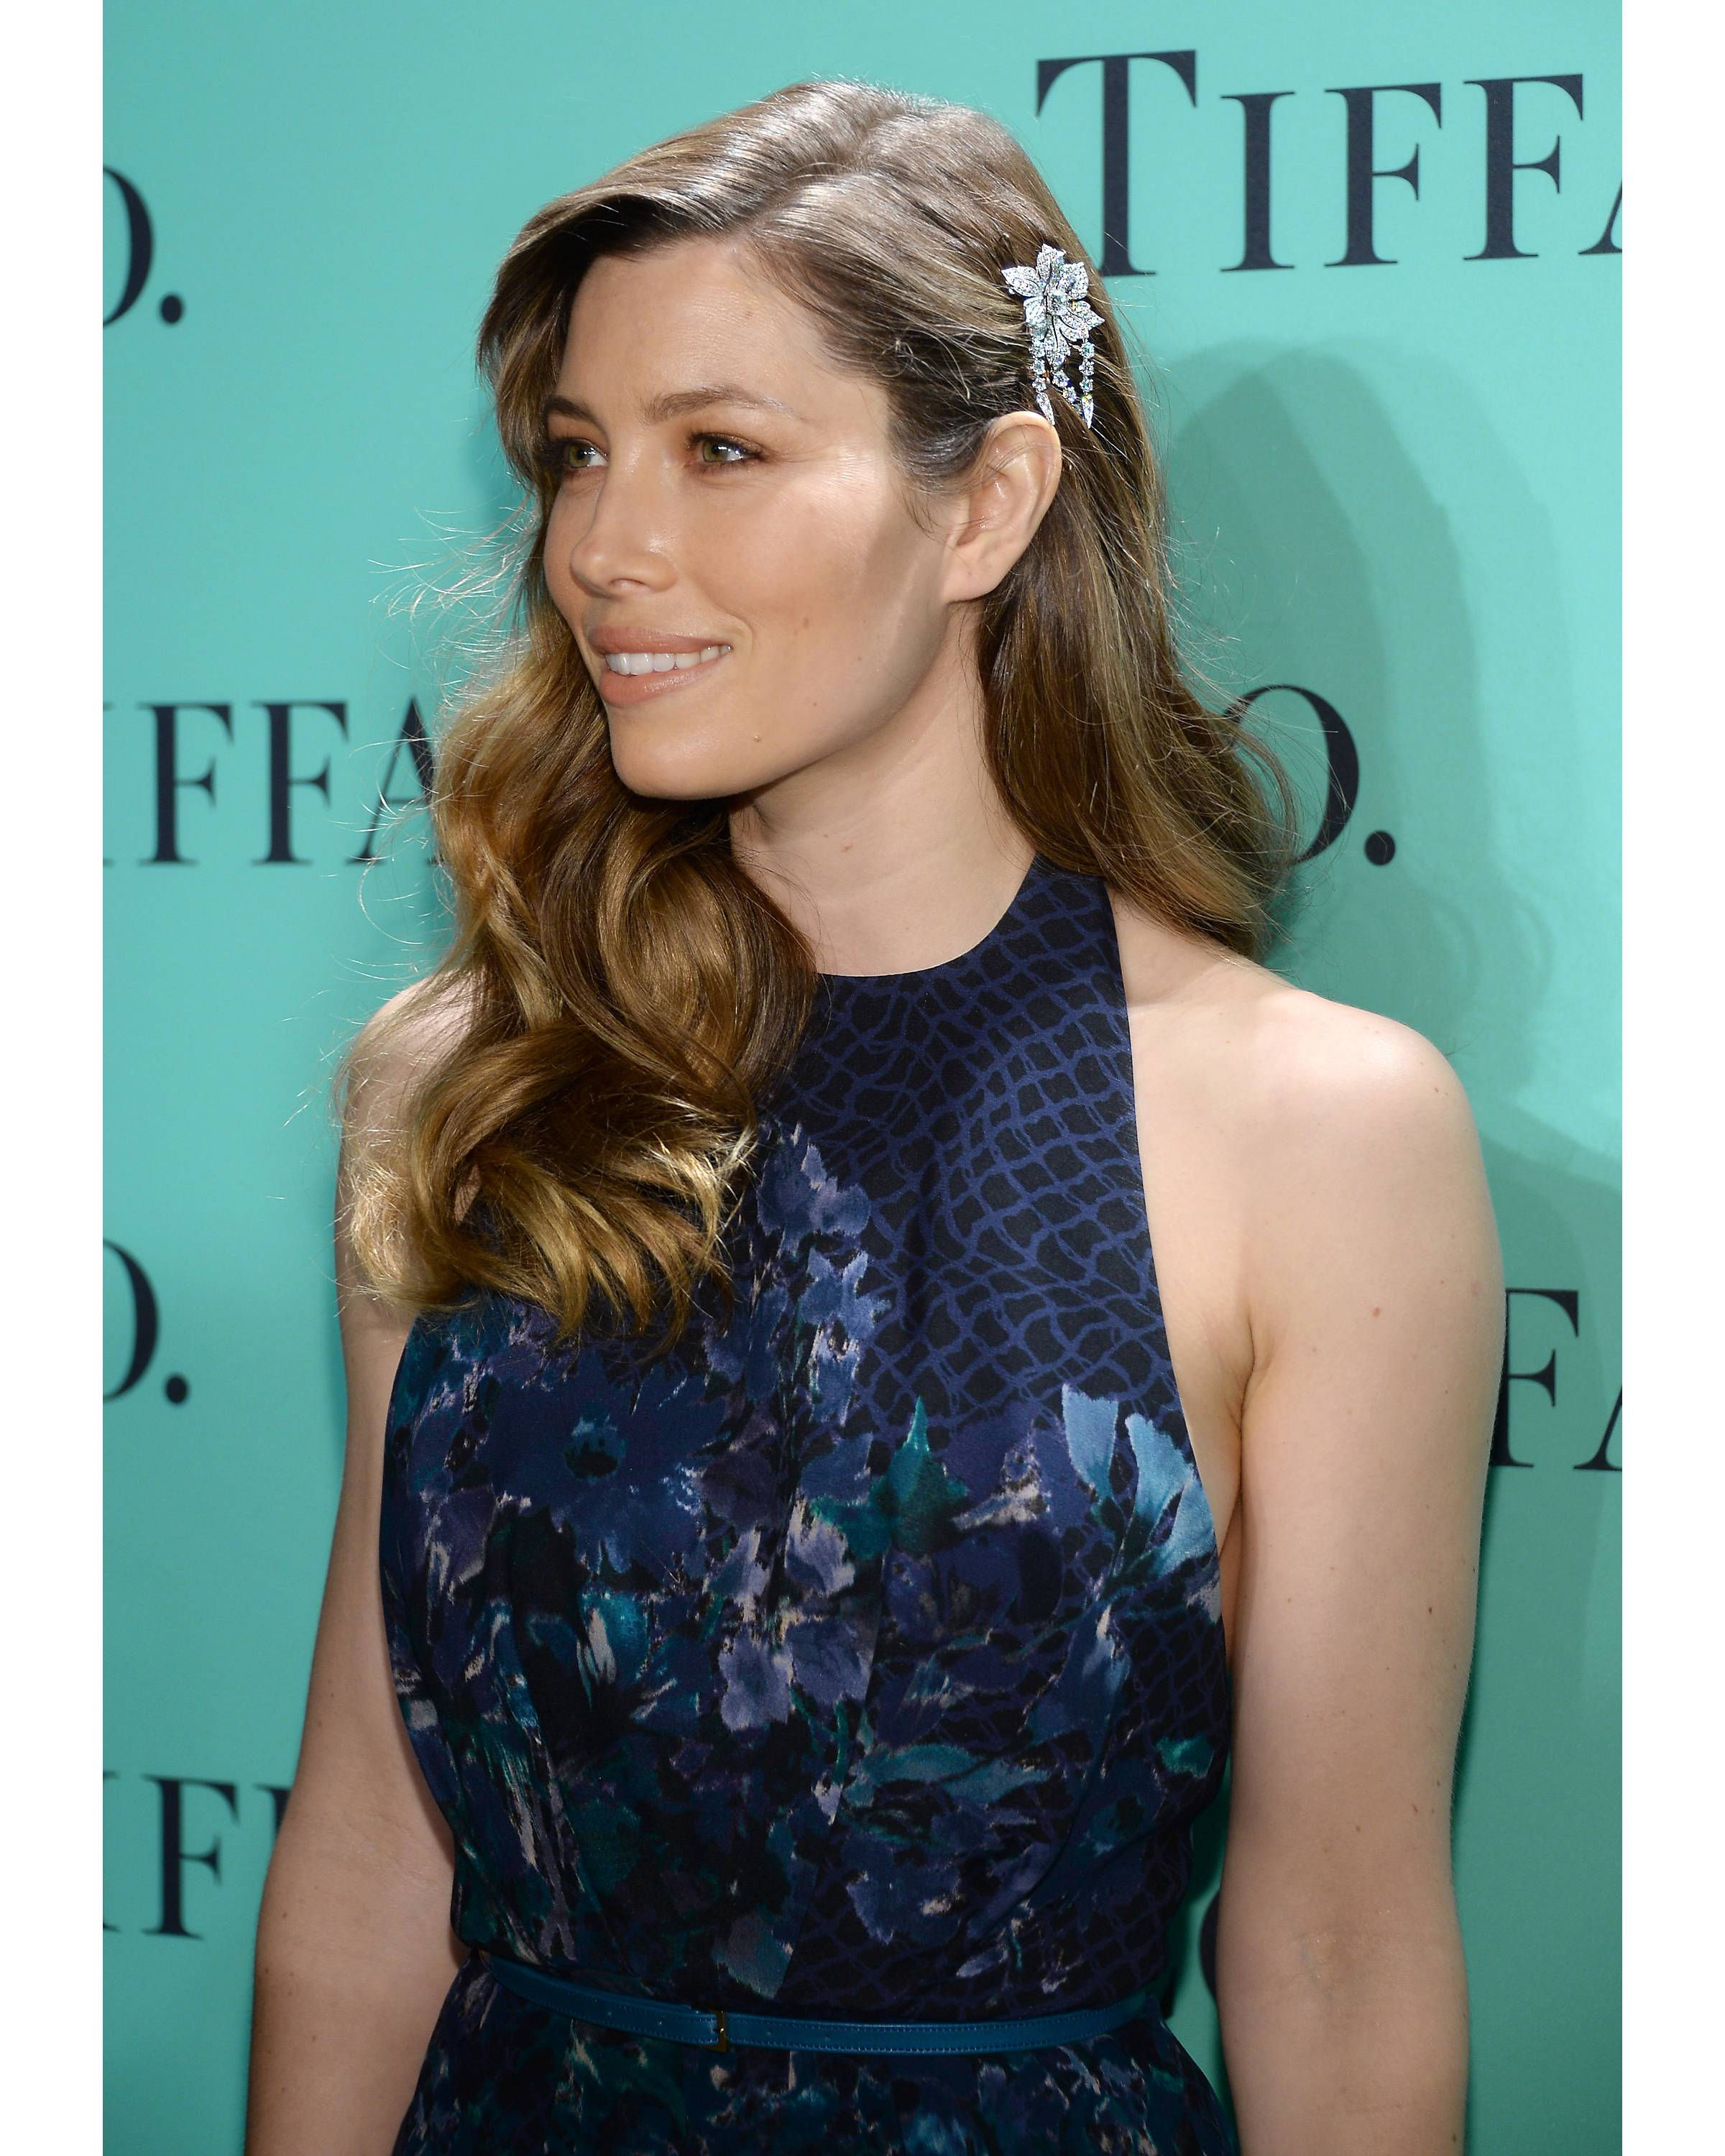 Jessica Biel at the Tiffany & Co. Blue Book Ball  Credit: Getty Images